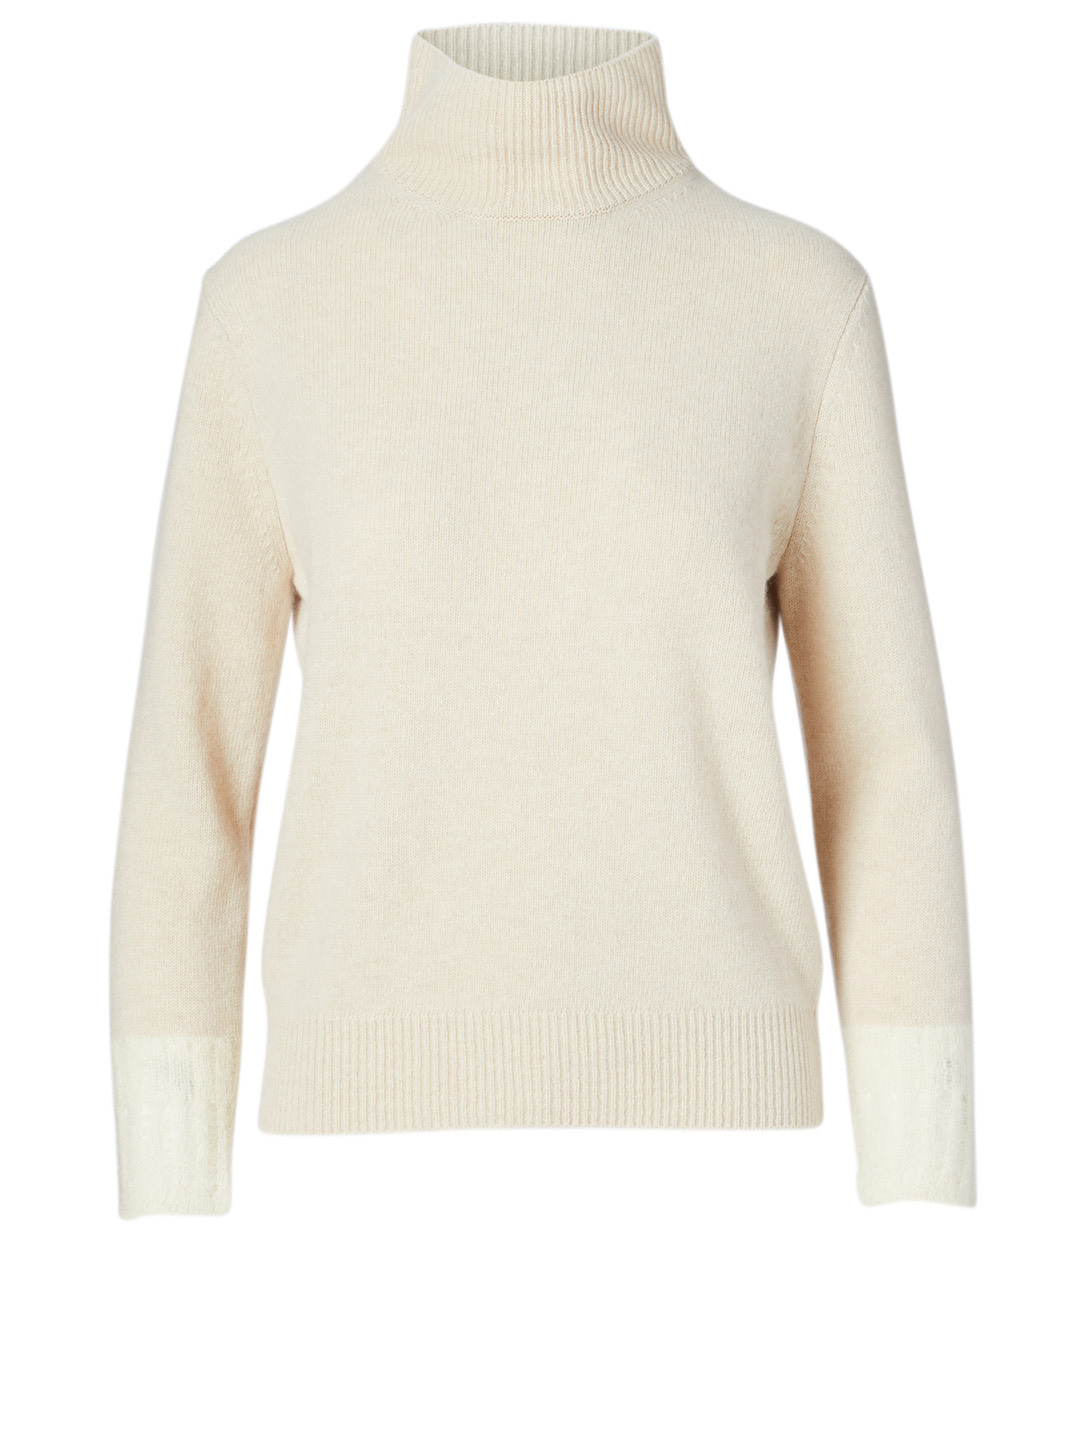 KUHO Wool And Cashmere Turtleneck Sweater Women's Beige